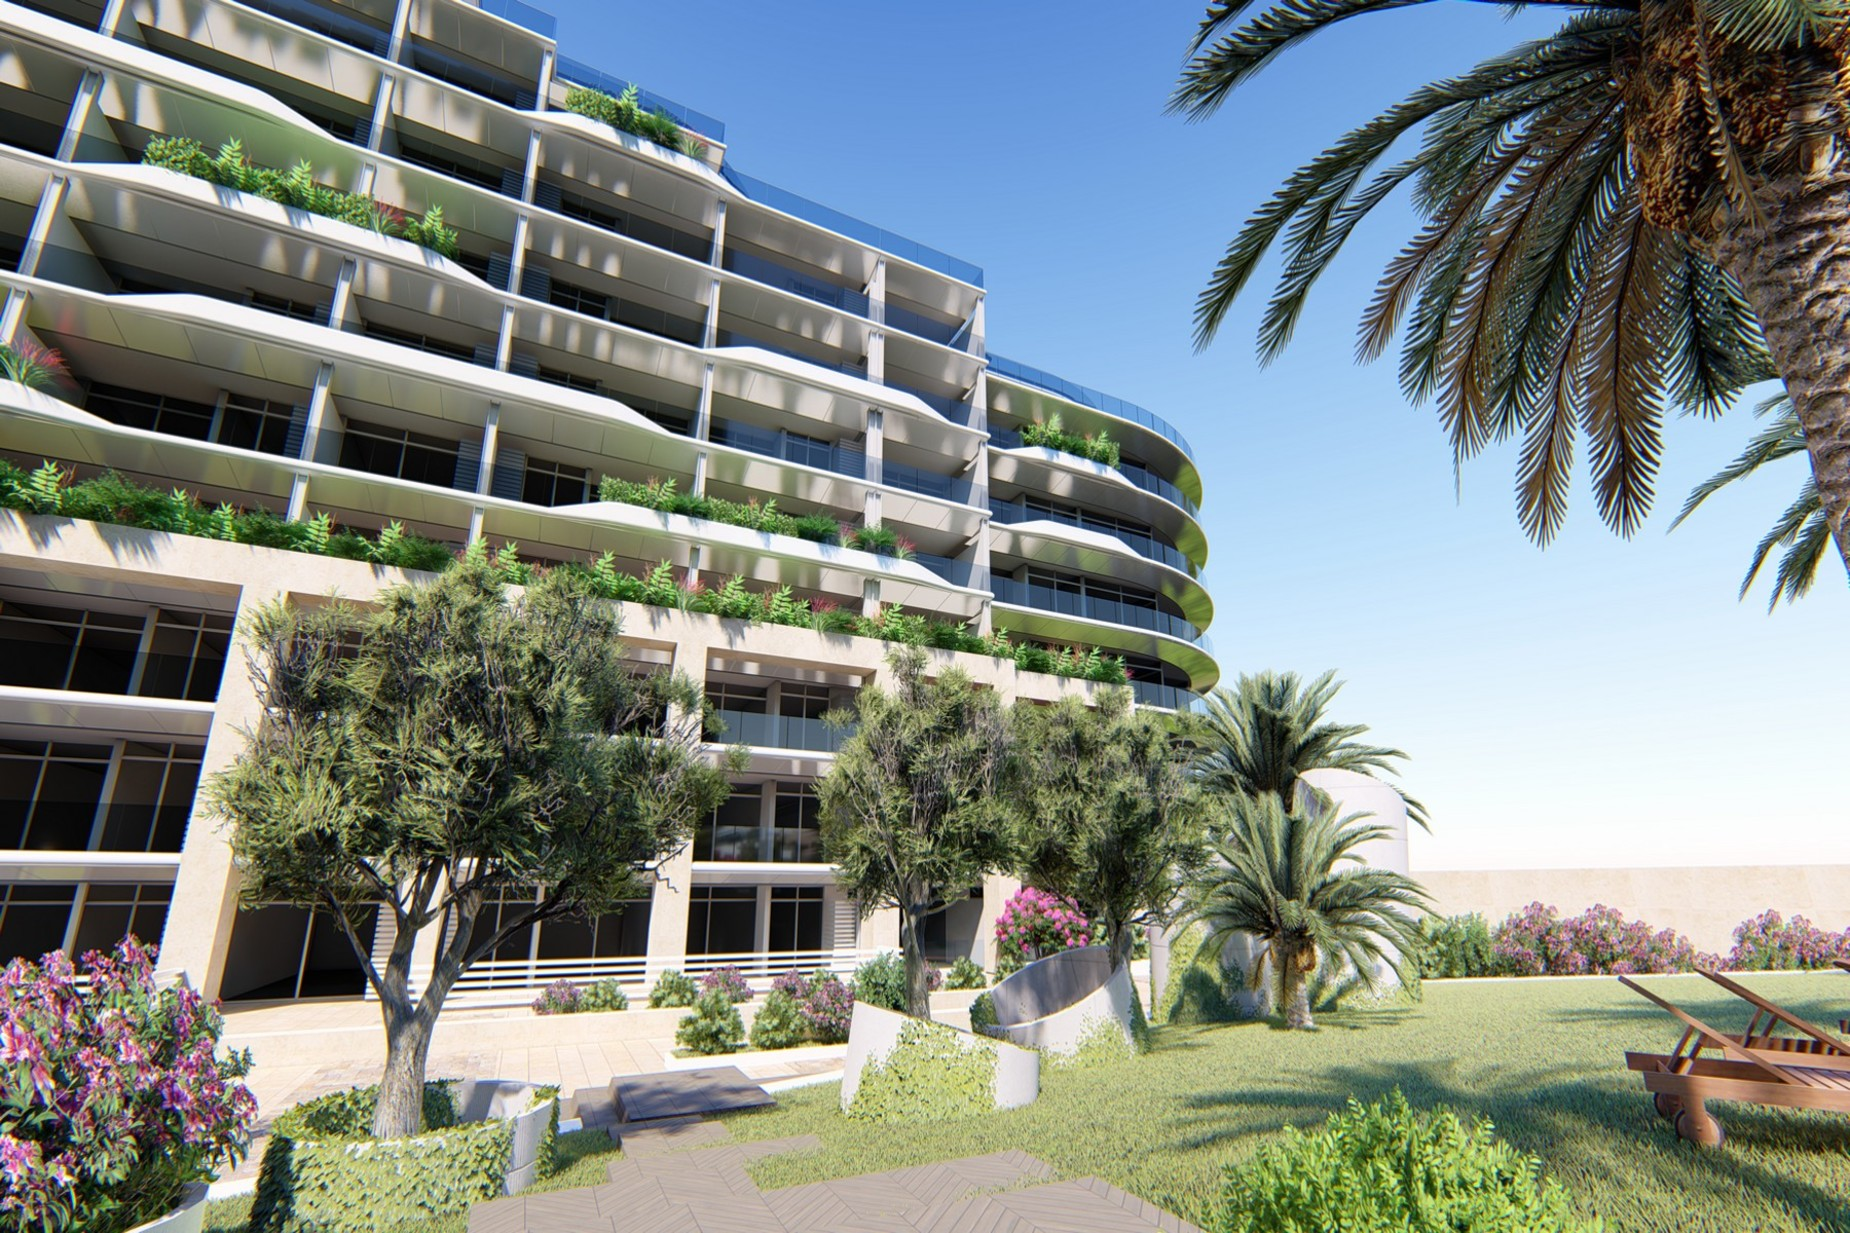 0 bed Block of Apartments (Res) For Sale in Kalkara, Kalkara - thumb 4